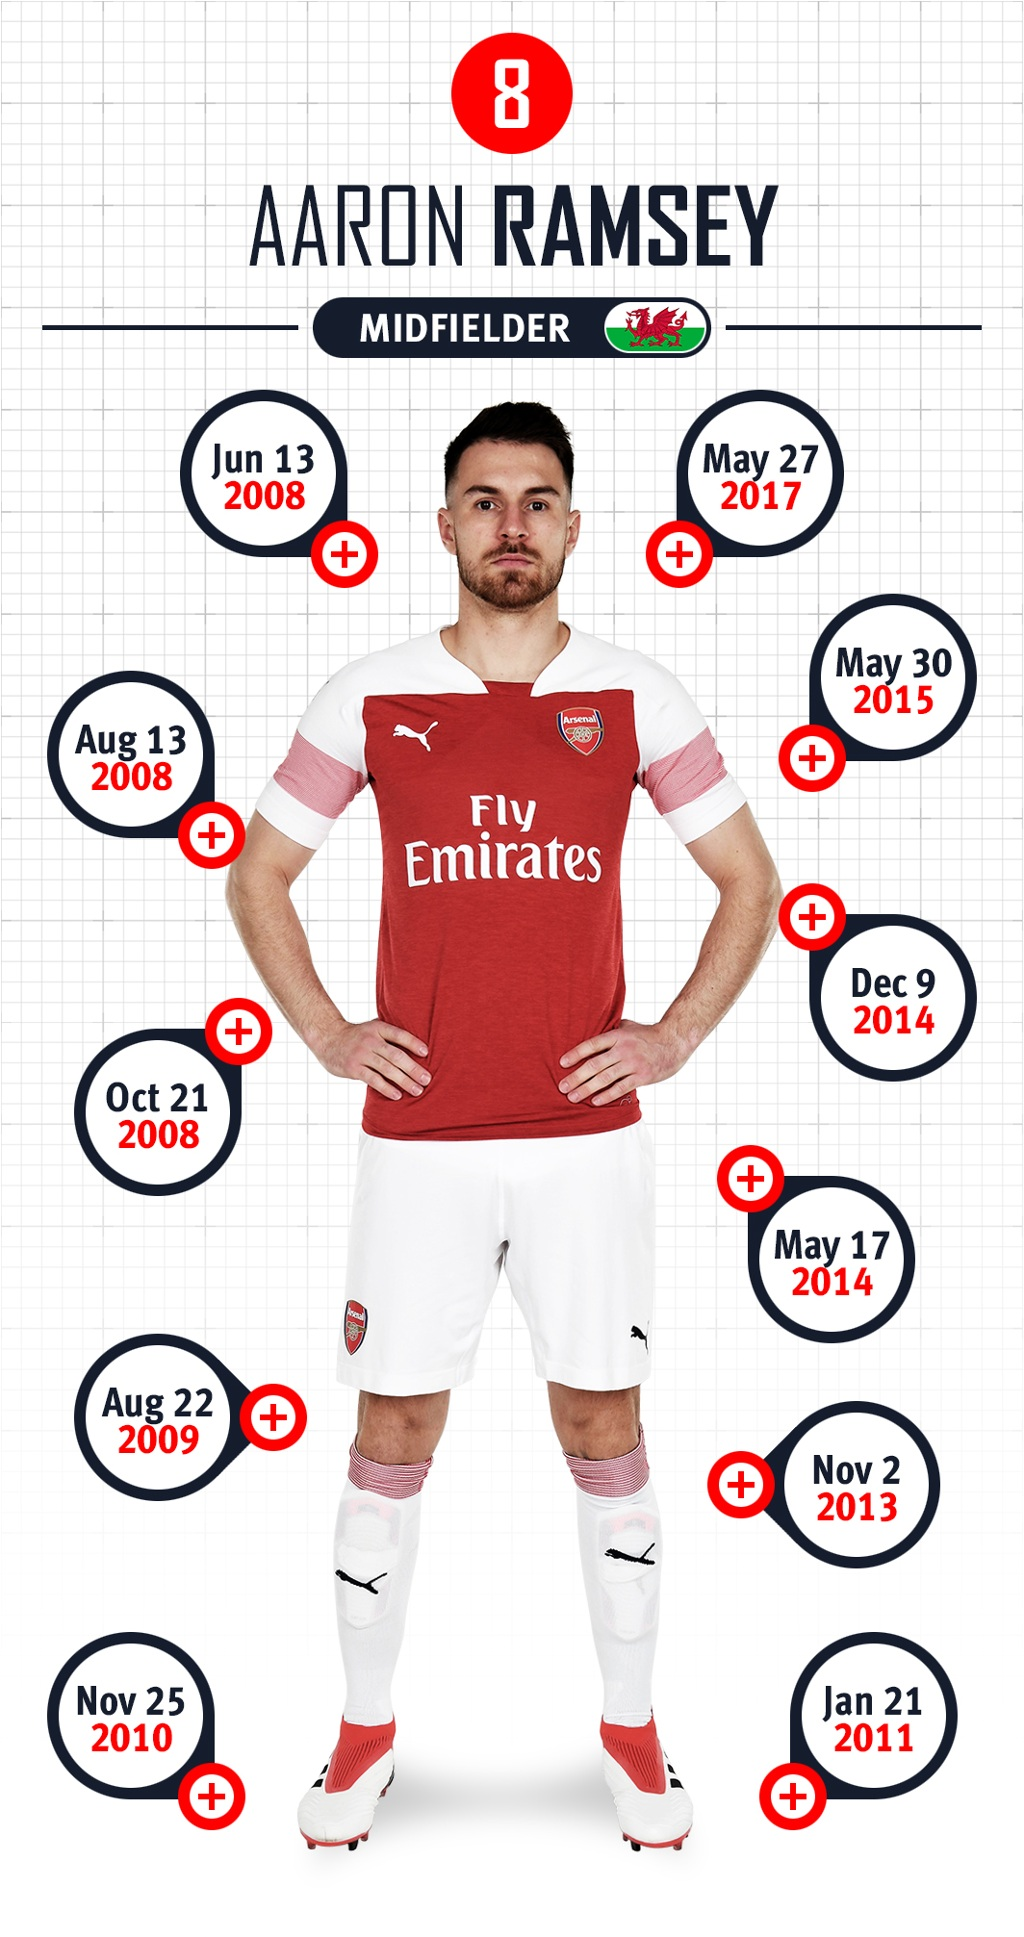 e8cee523f Aaron Ramsey | Players | First Team | Arsenal.com